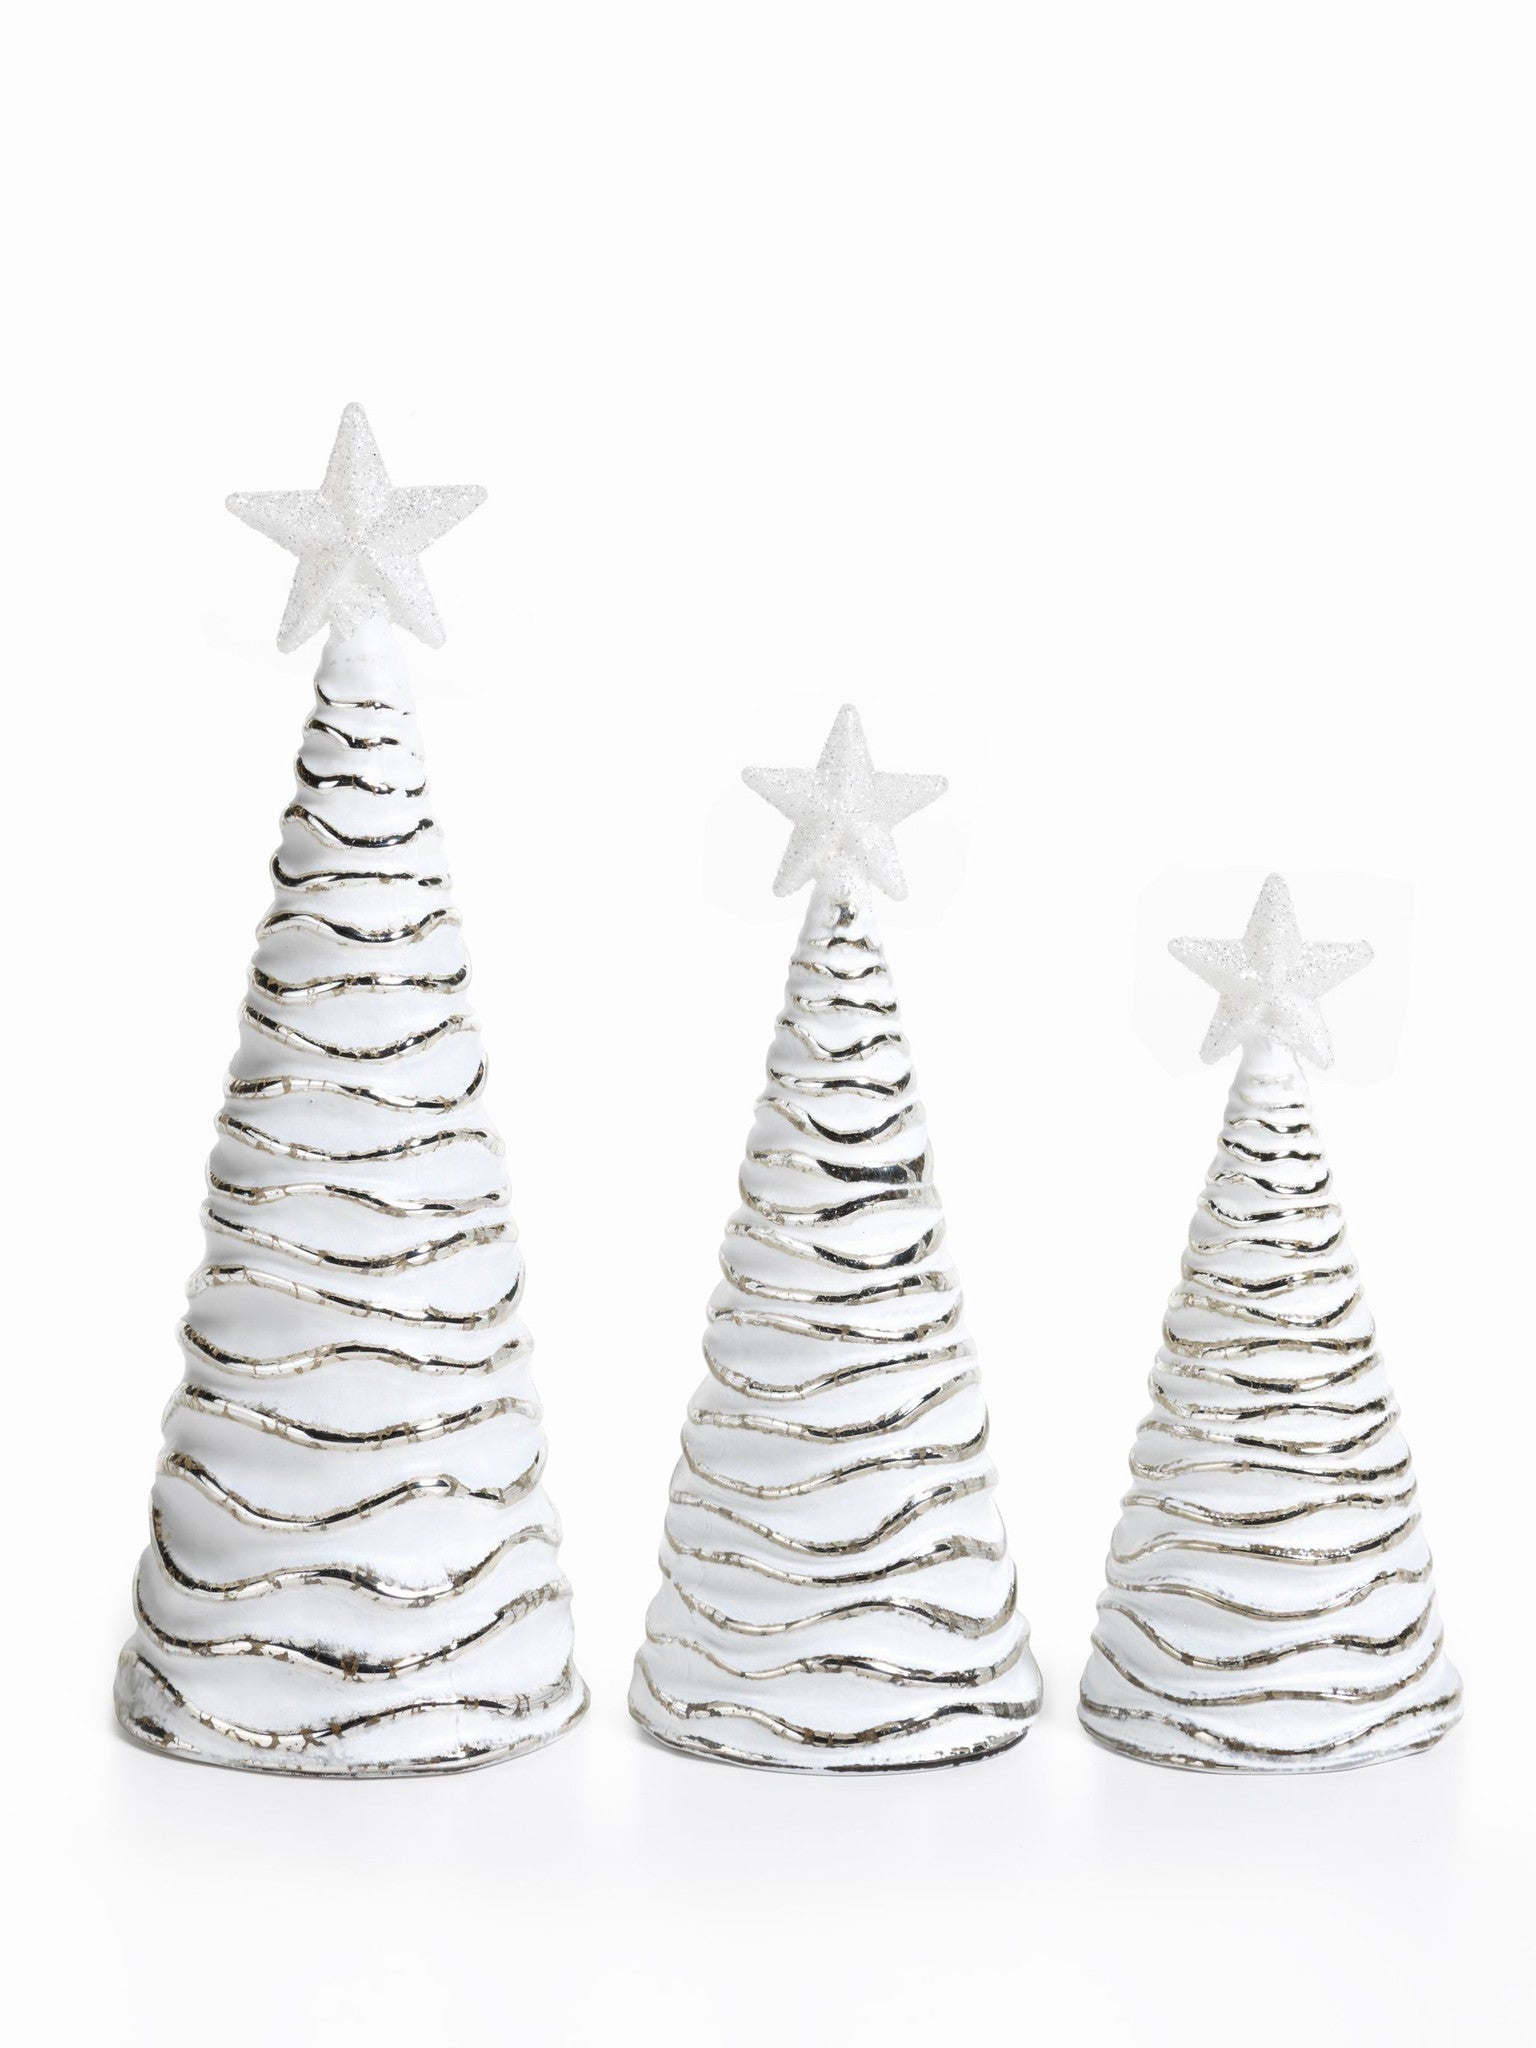 LED Glass Decorative Tree - Silver - Set of 6 -  - CARLYLE AVENUE - 2